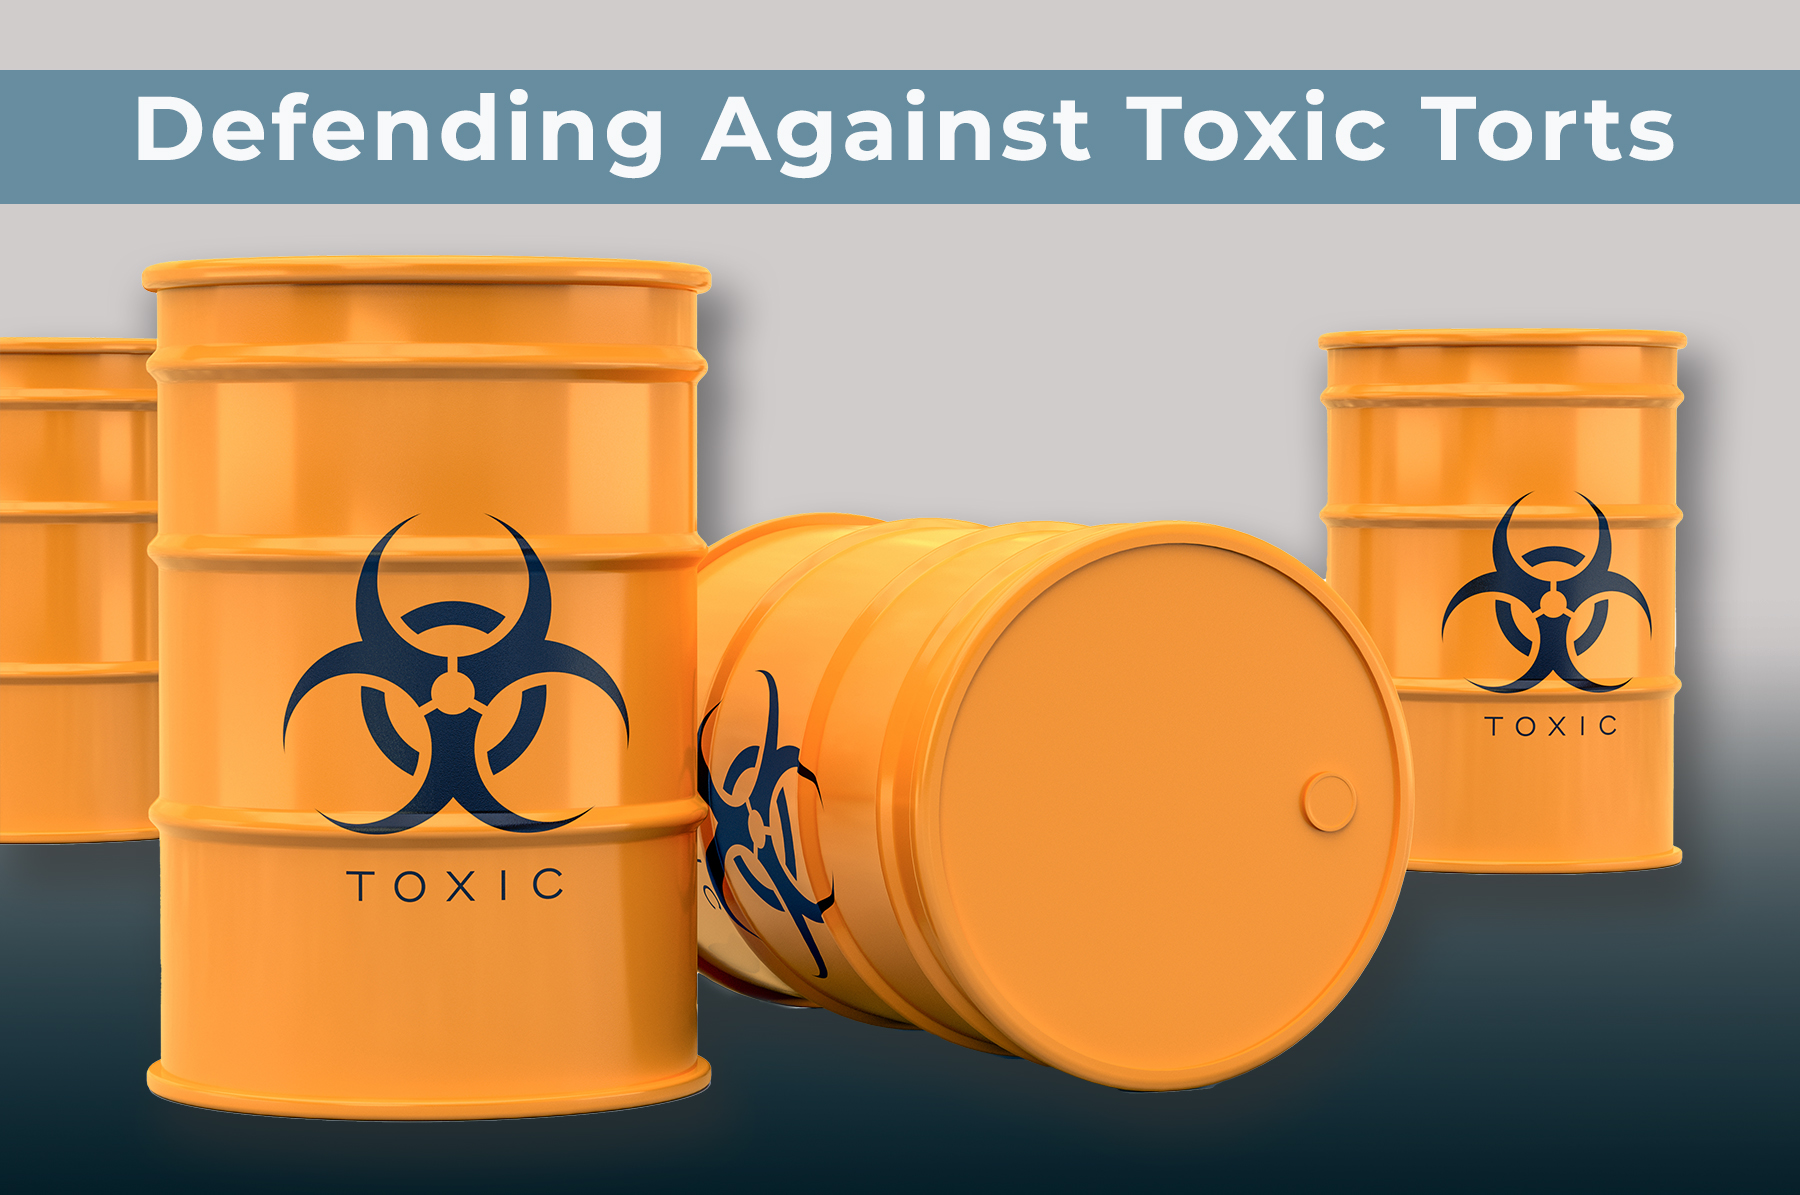 DEFENDING AGAINST TOXIC TORTS